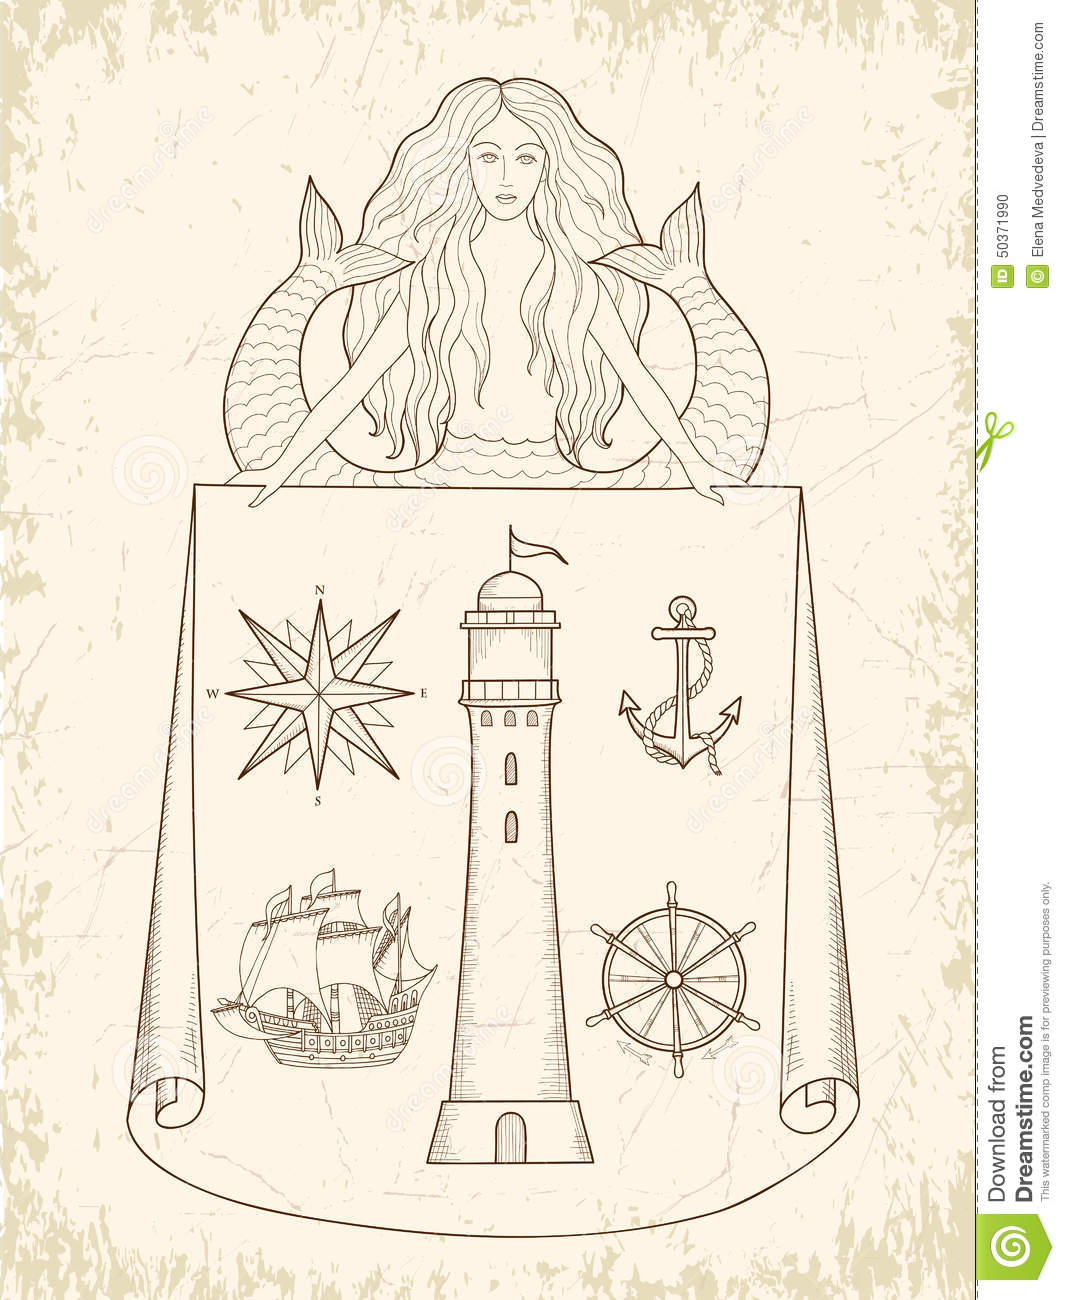 Key Elements Of Nautical Style: Medieval Maritime Maps Stock Vector. Illustration Of